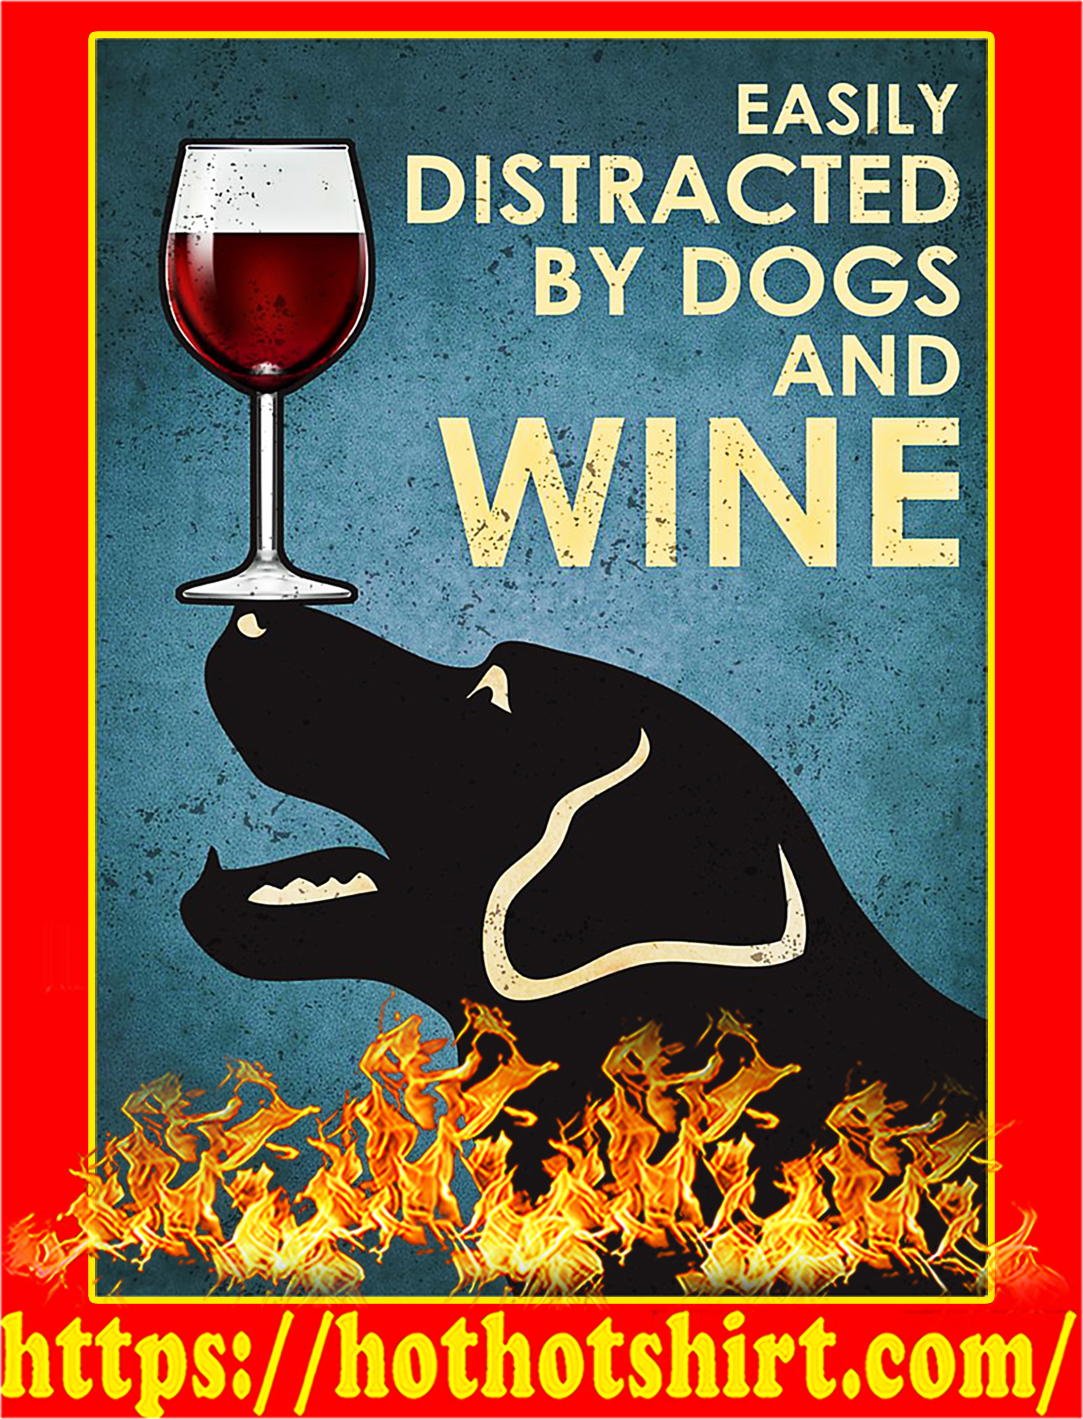 Easily distracted by dogs and wine poster - A1